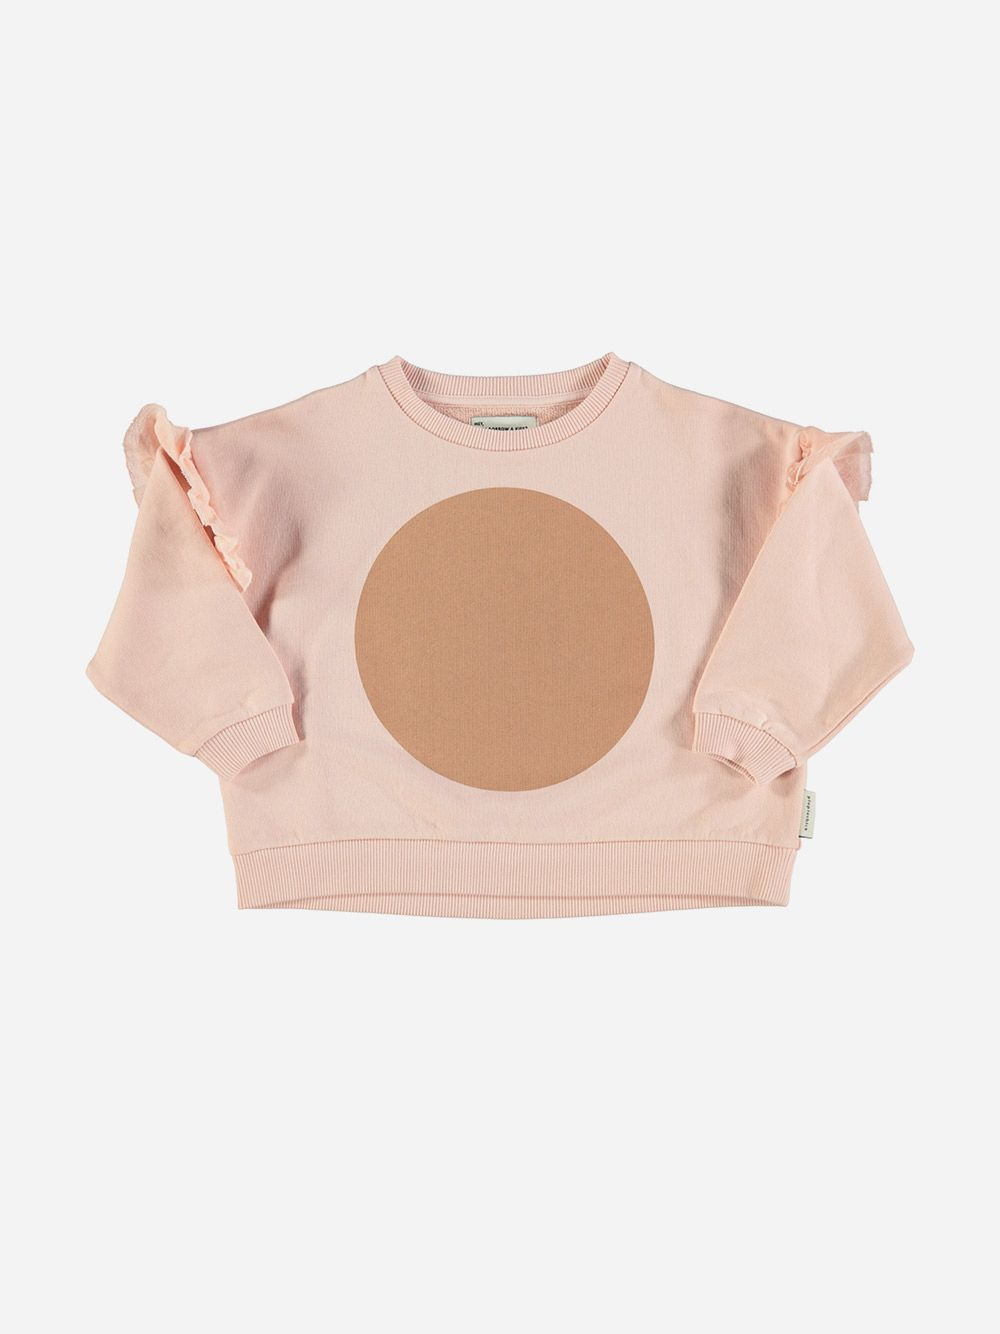 Sweatshirt with Frills on Shoulders Pale Pink